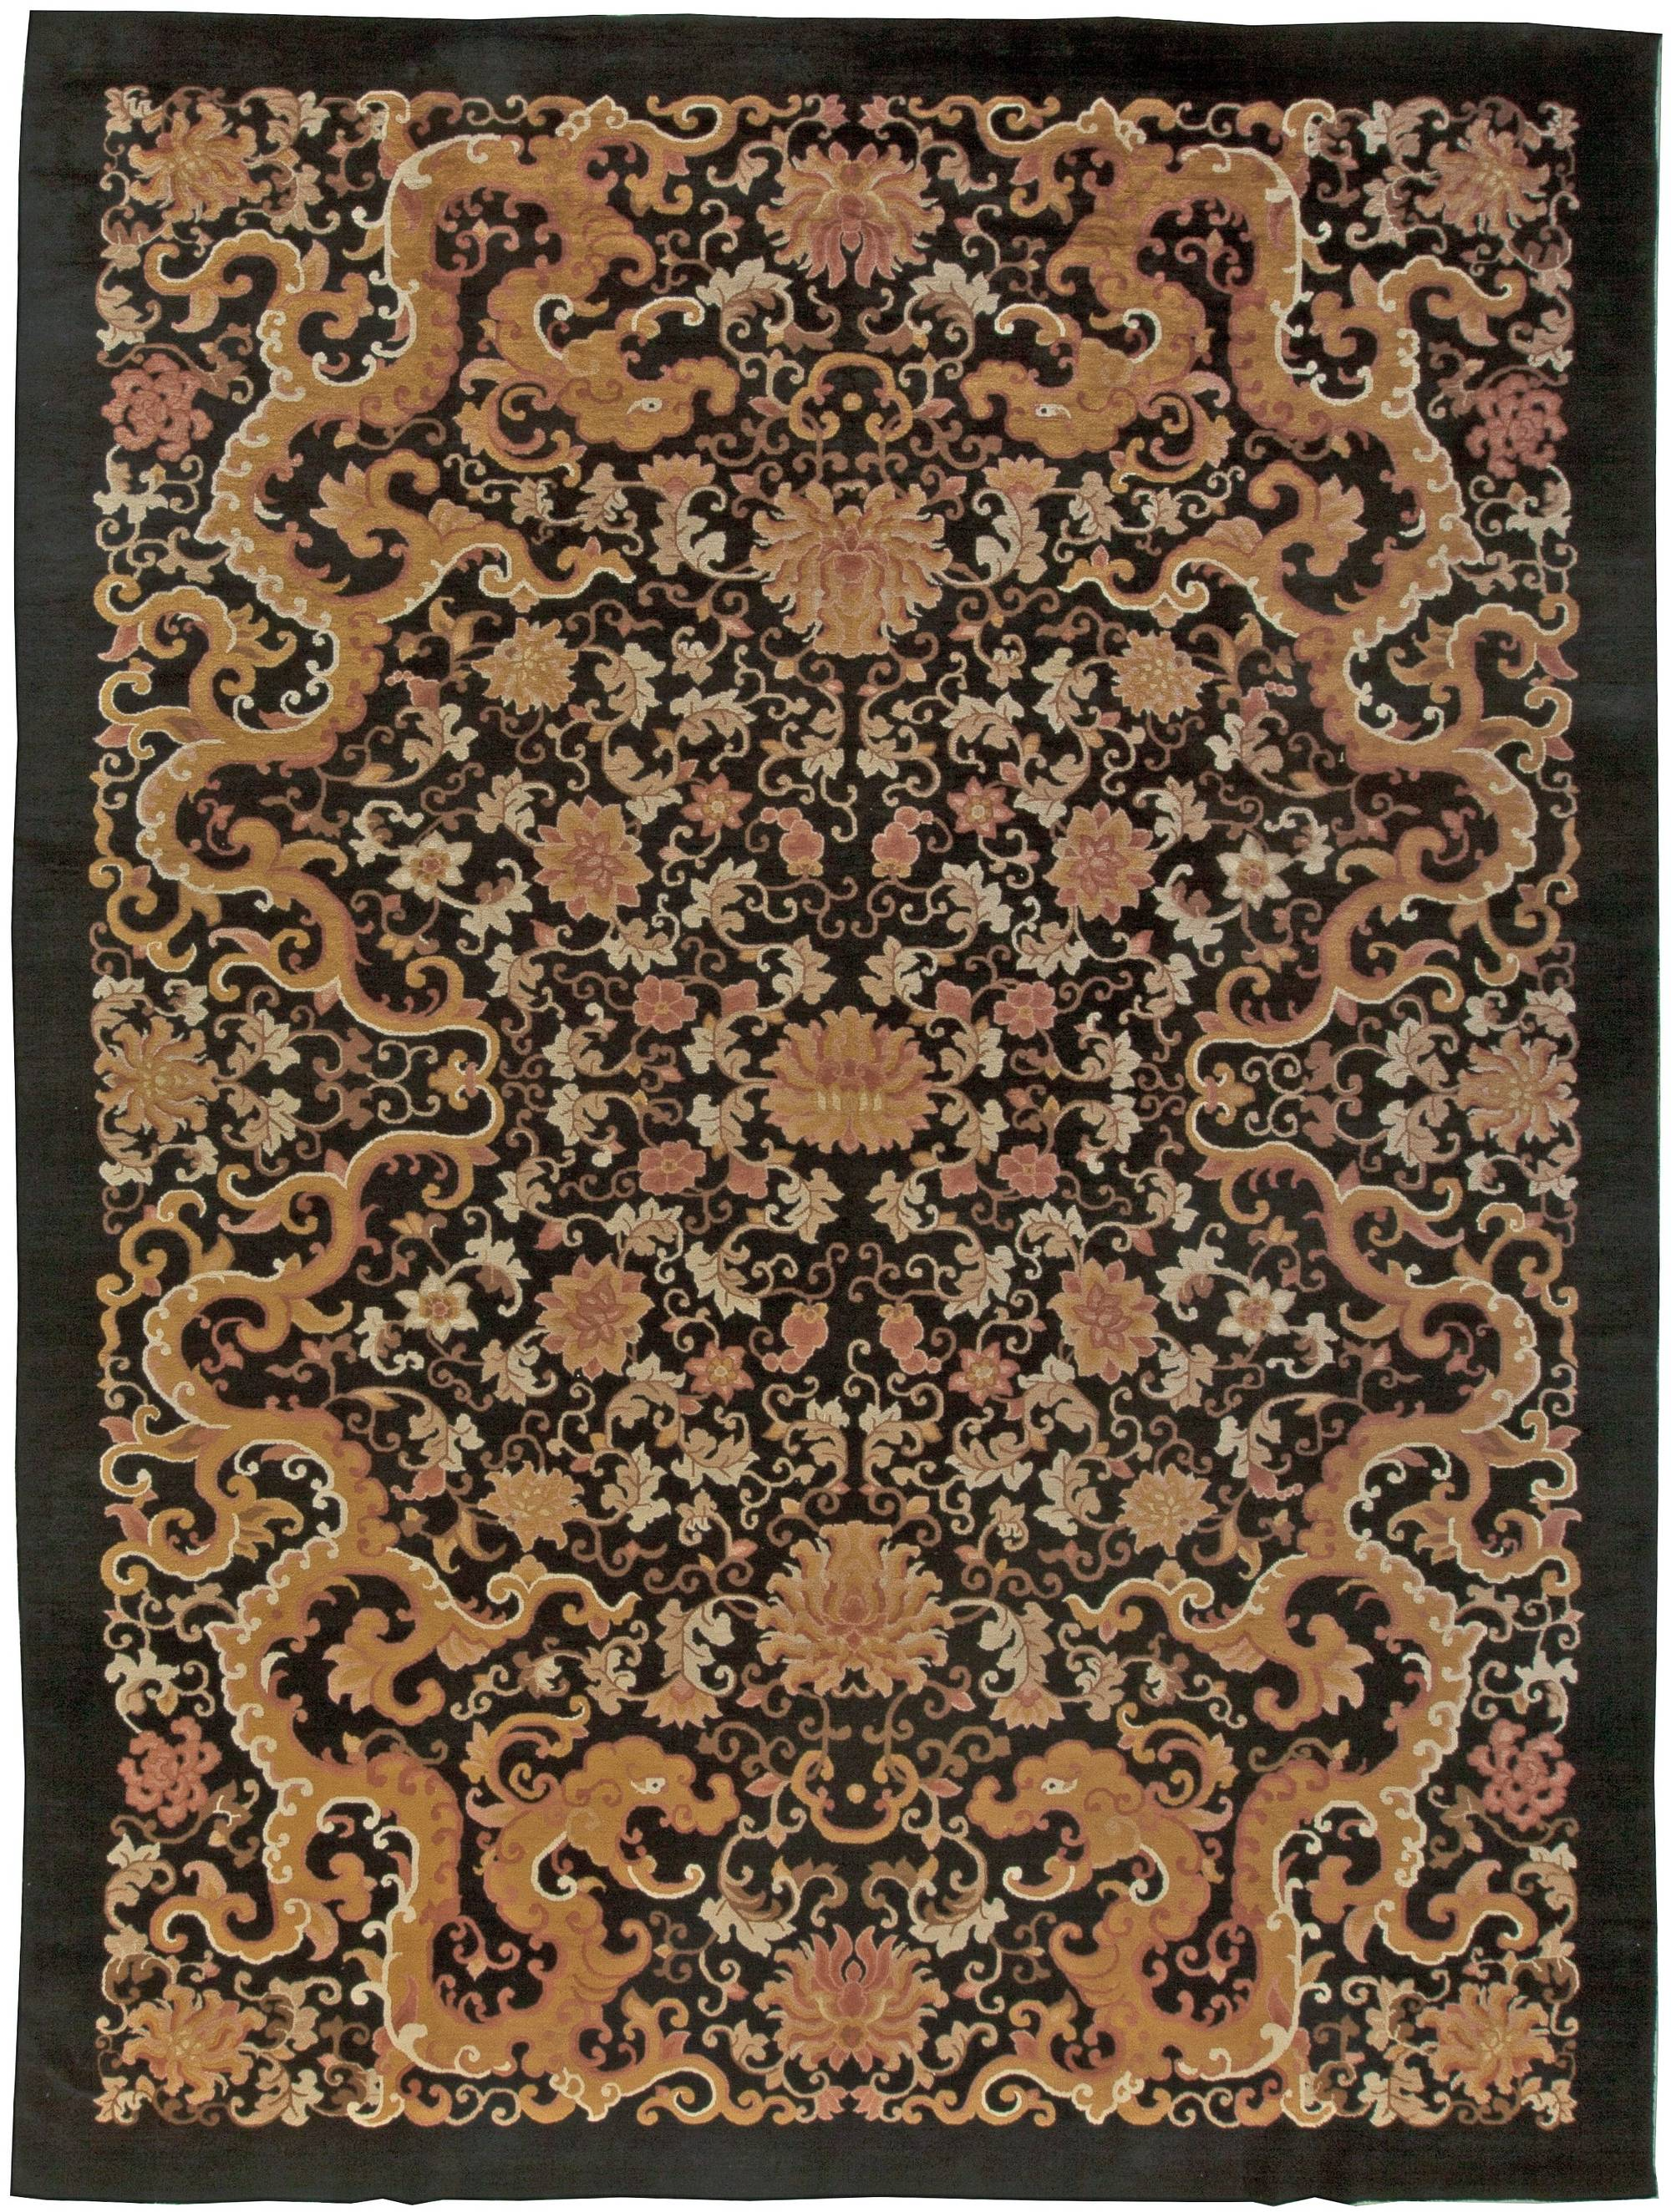 Chinese Rugs From Rug Collection By Doris Leslie Blau - New patterned rugs designs